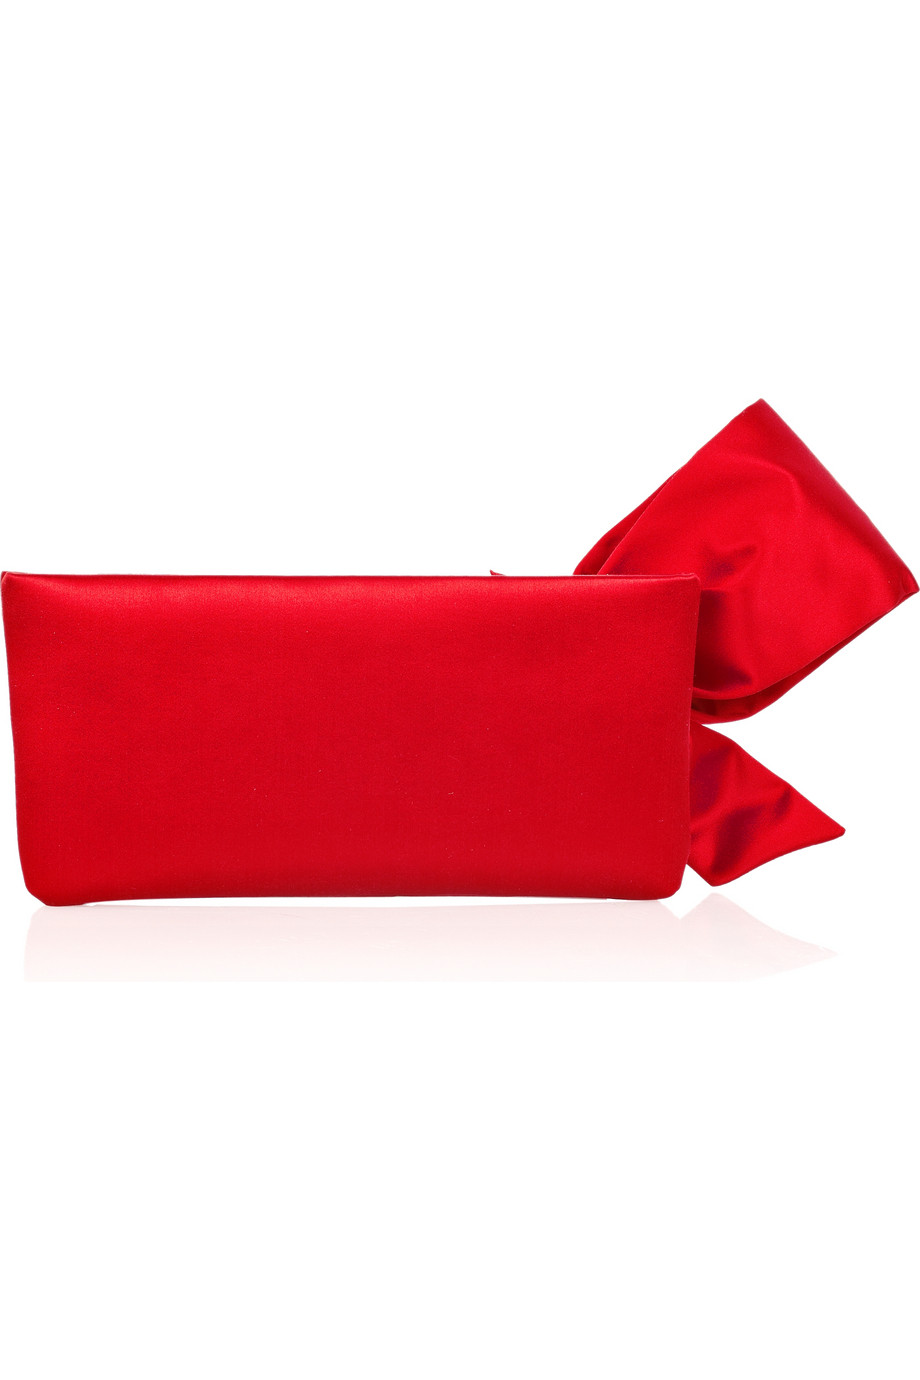 Valentino Bow Satin Clutch In Red | Lyst